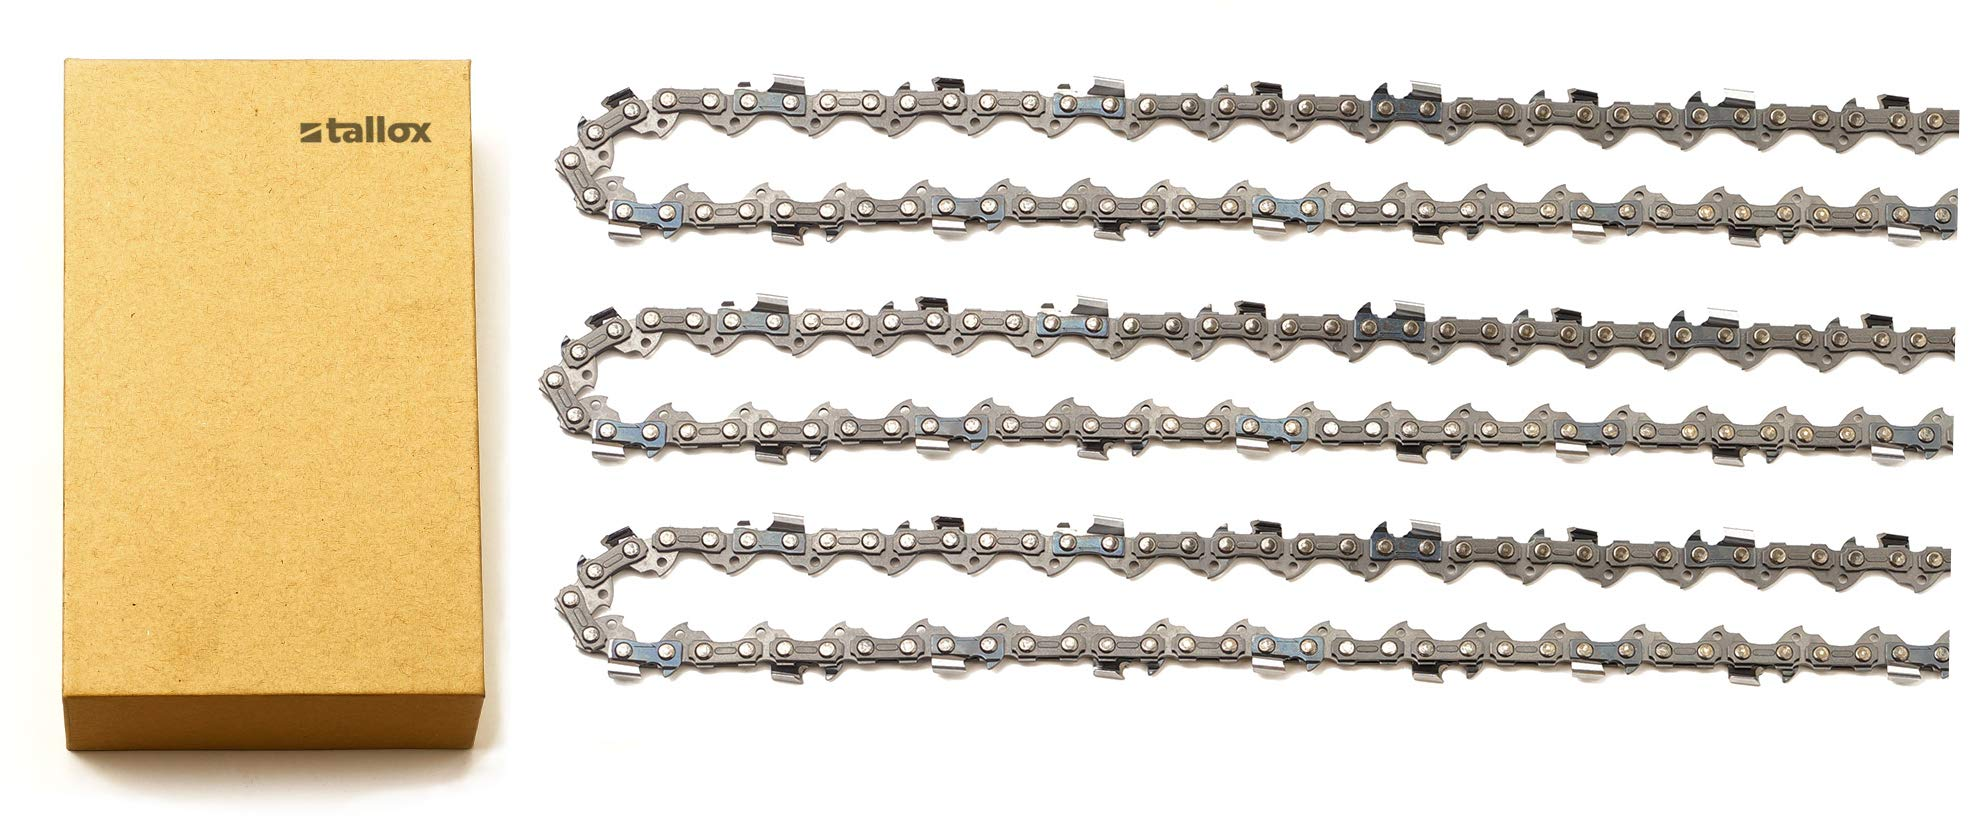 tallox 3 Pack 18'' Chainsaw Chains 3/8 LP .050'' 62 Drive Links fits Craftsman, Homelite, Poulan by tallox